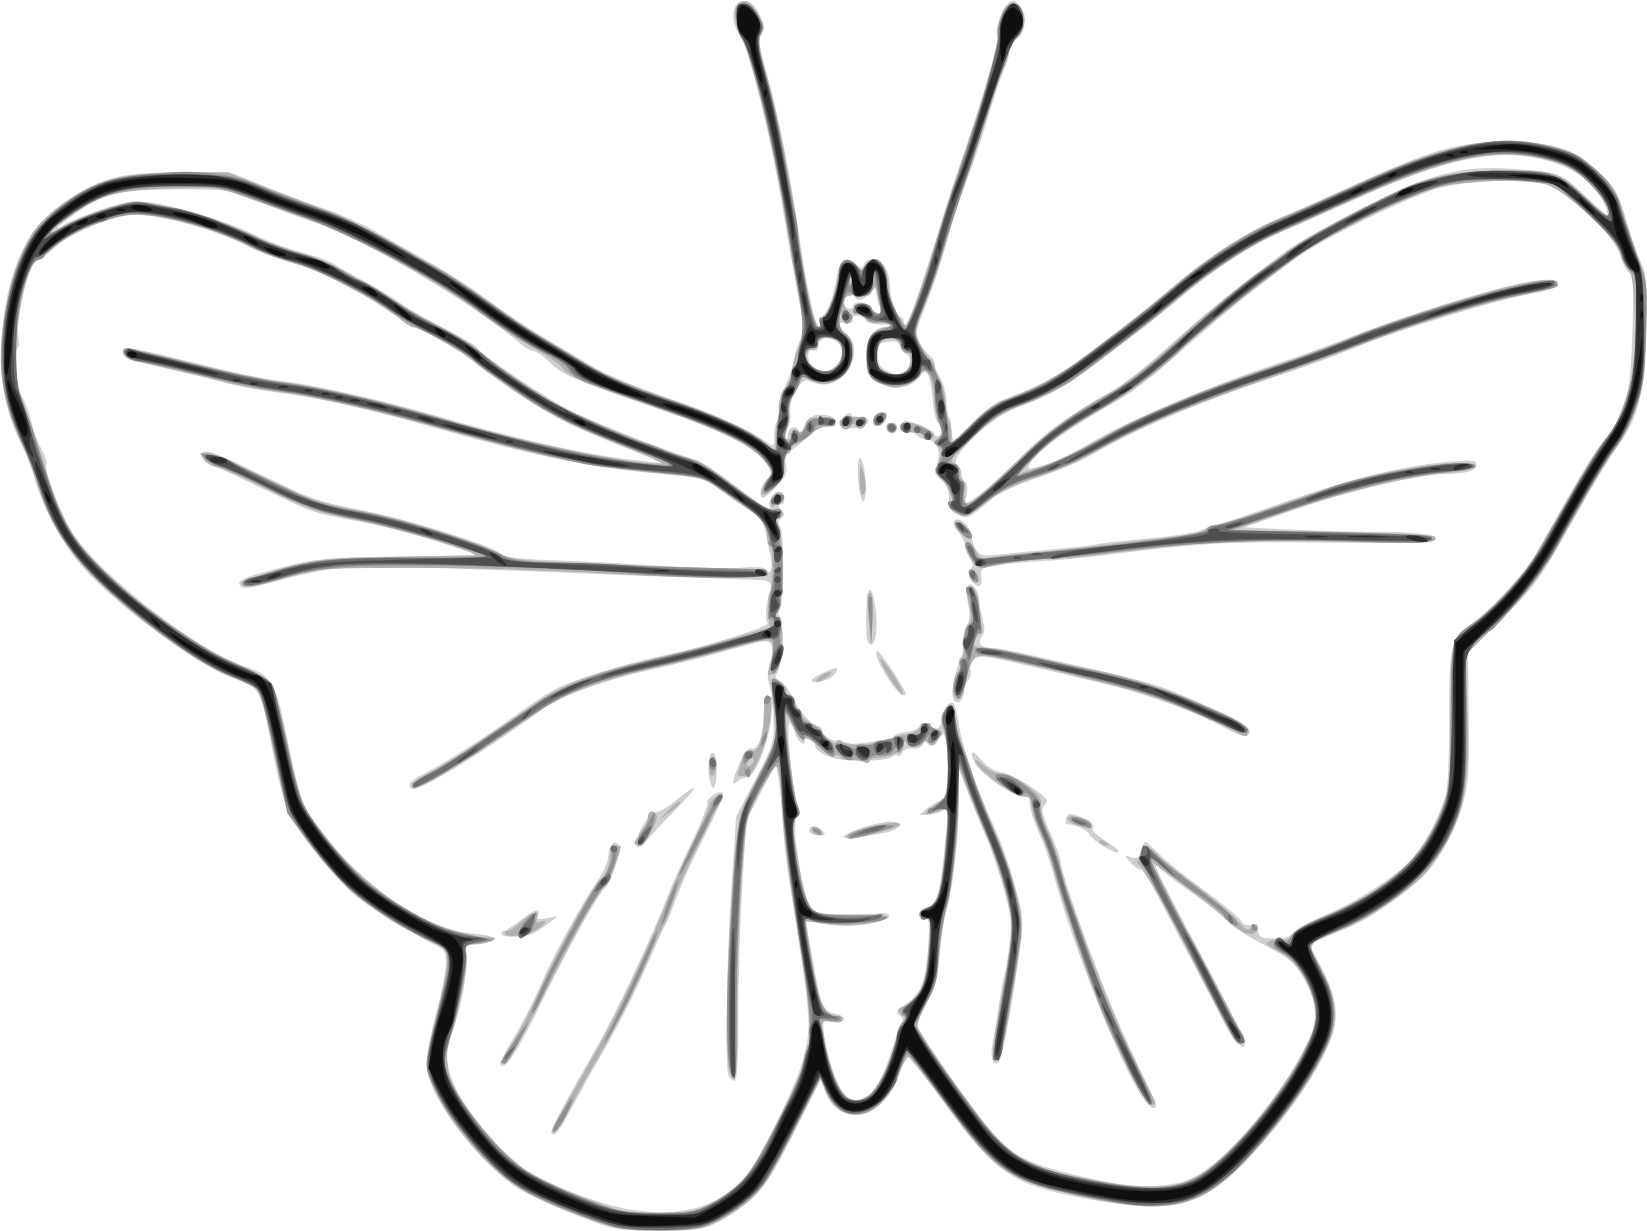 picture download Butterfly line art big. Moth clipart butter fly.